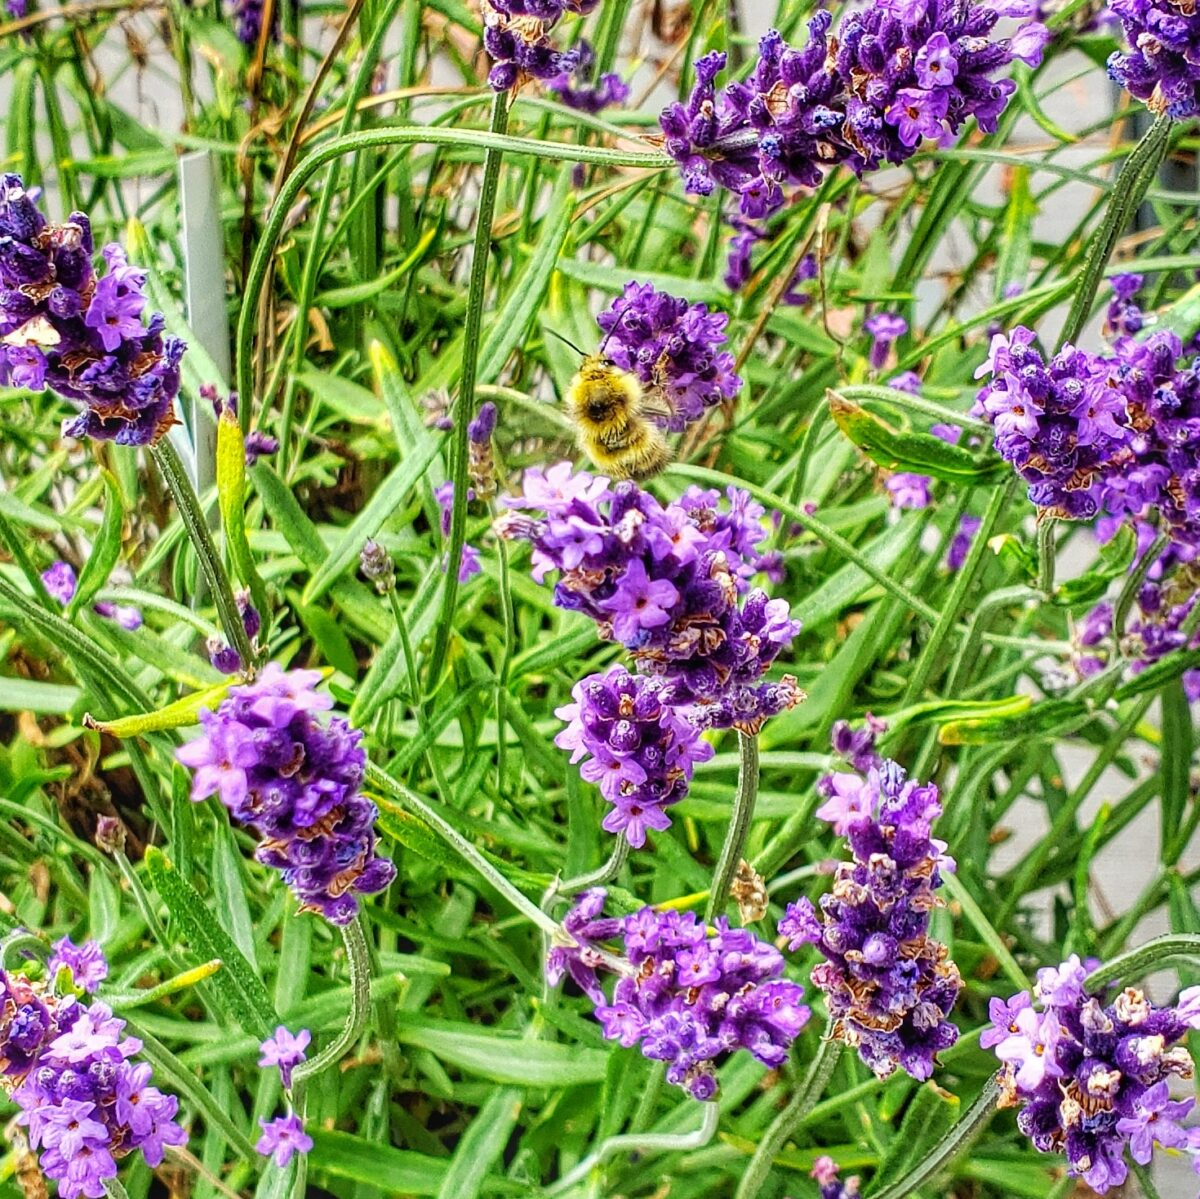 lavender plants with a bumble bee